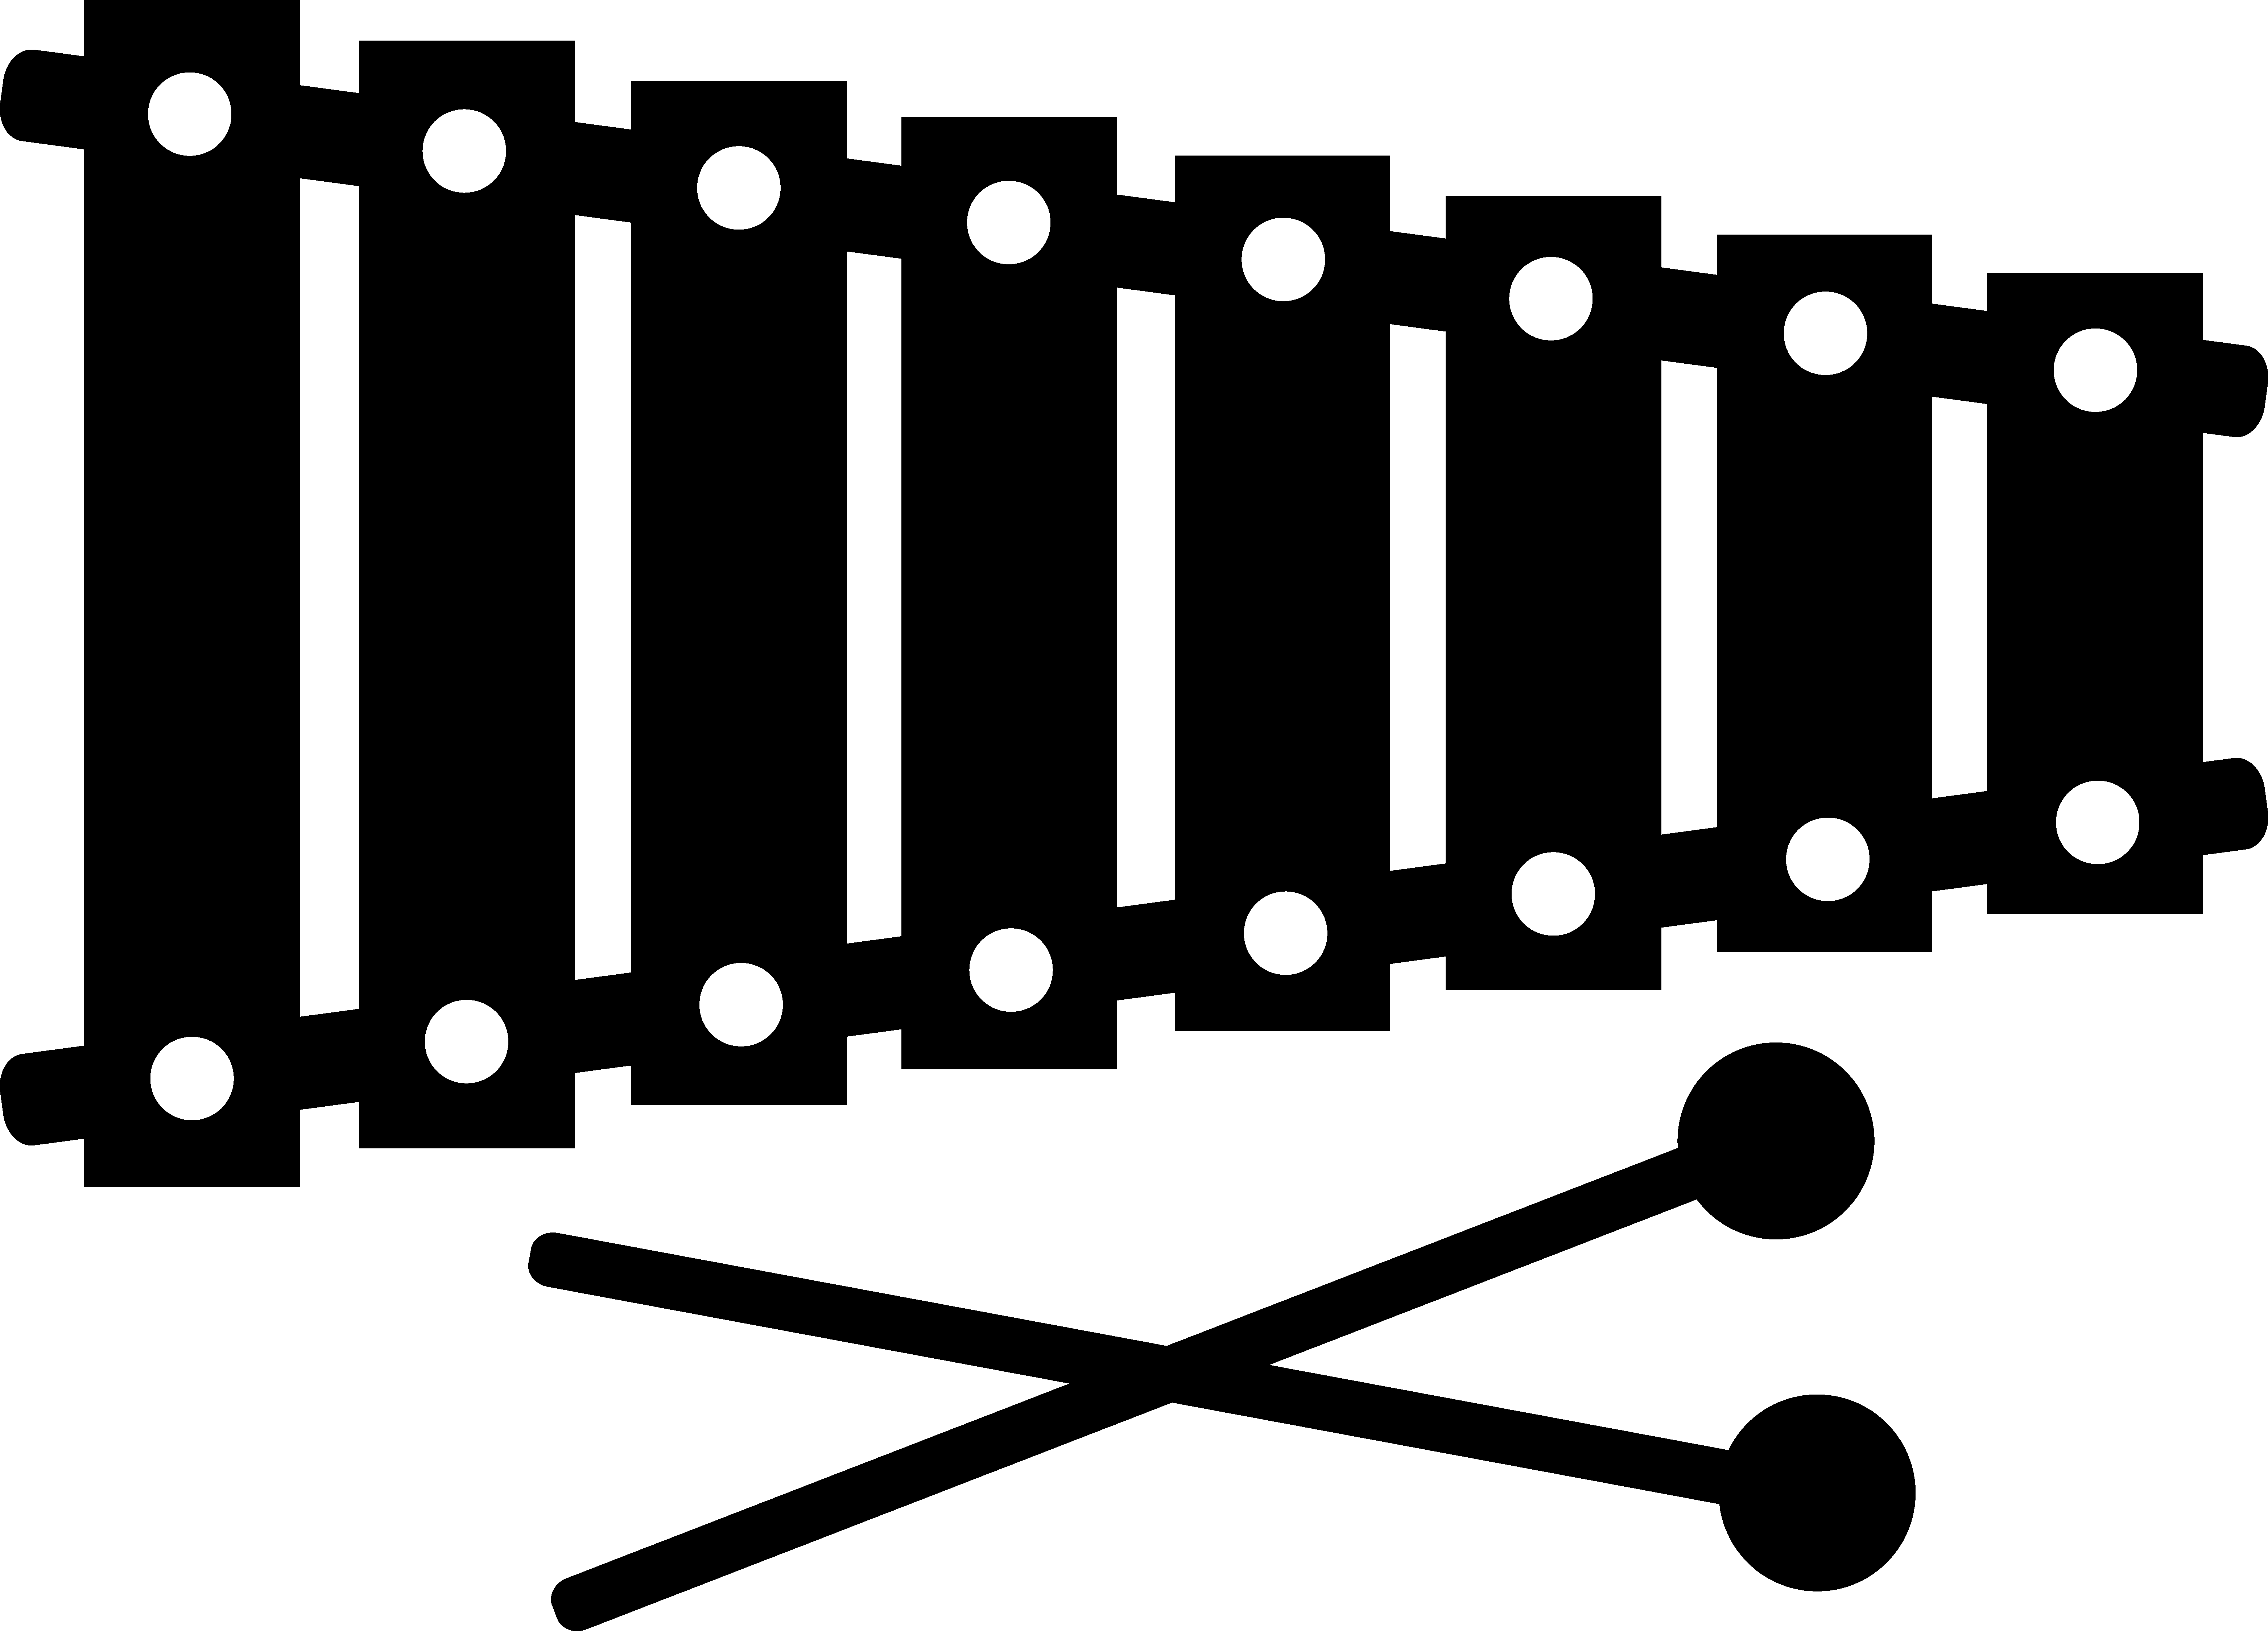 Xylophone Drawing Instrument Diagram Of Third Generation.